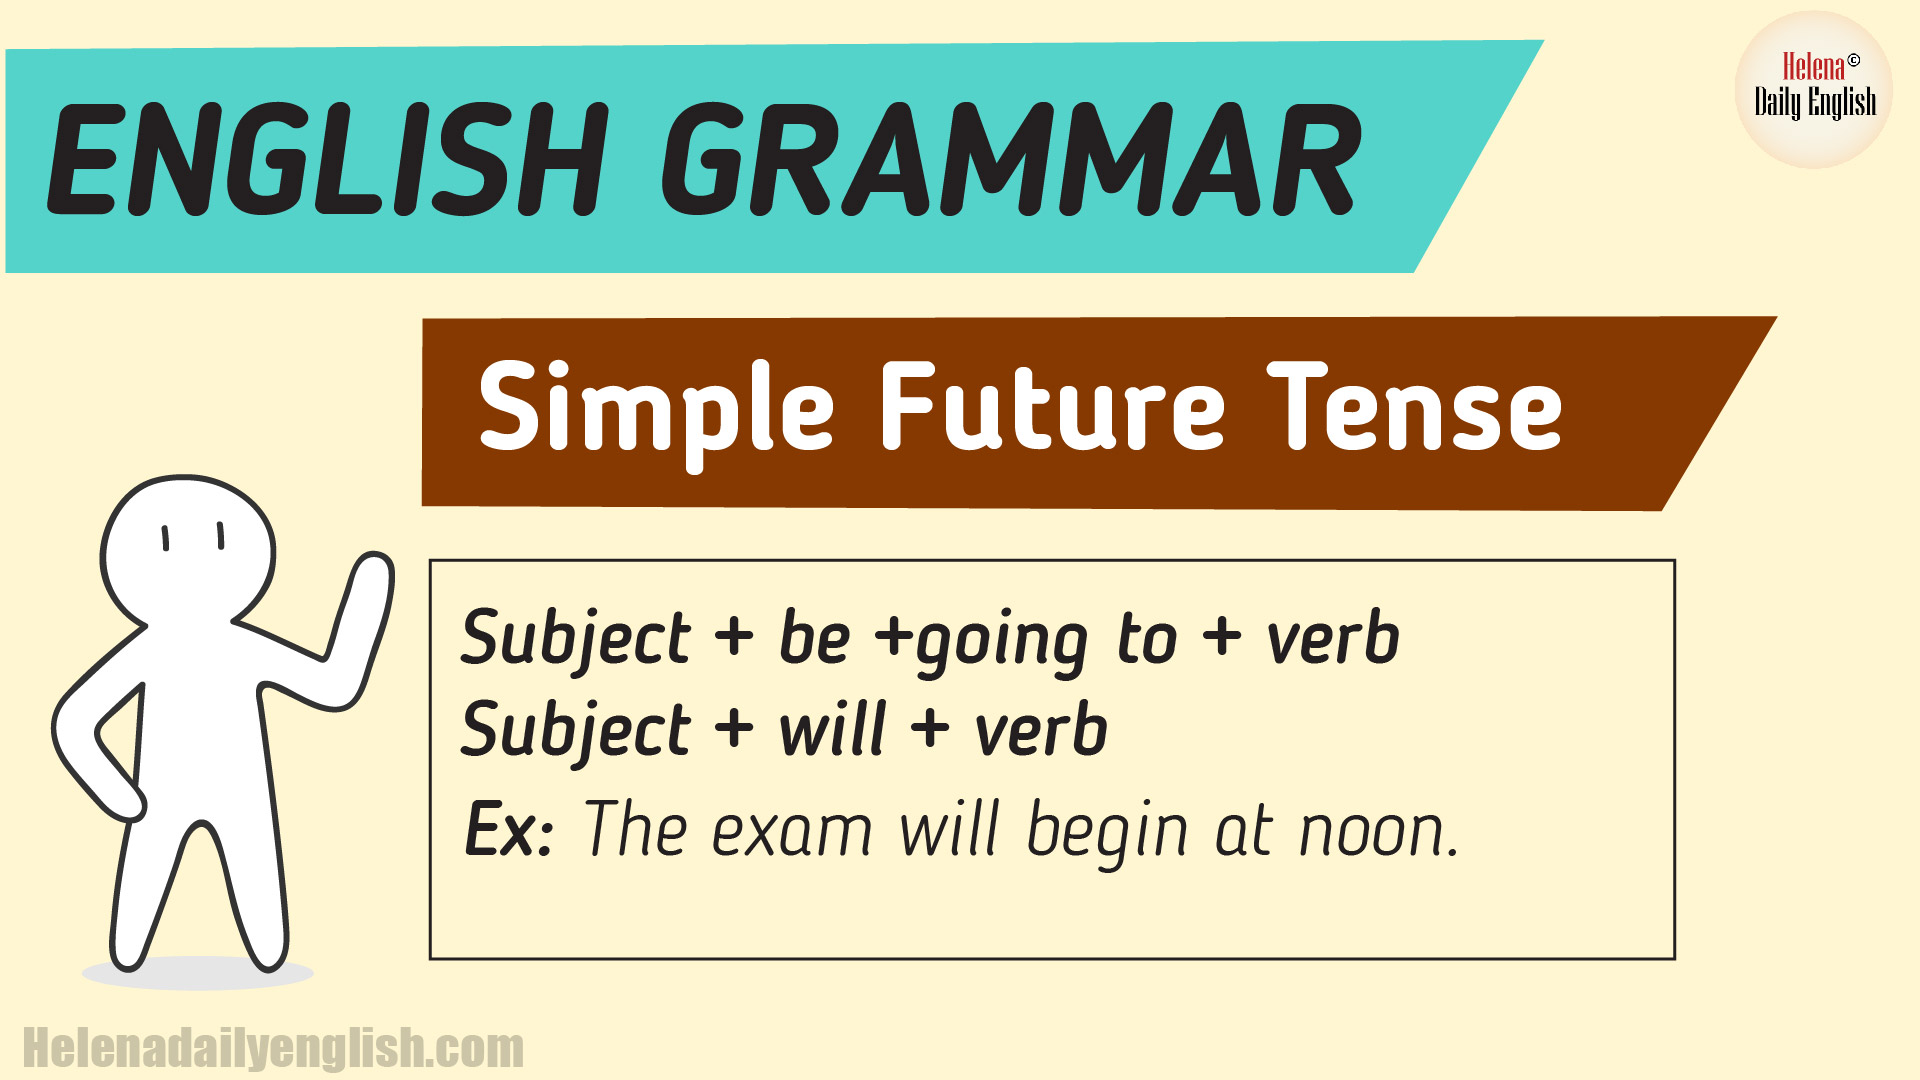 The Simple Future Tense Example Amp Explanation English